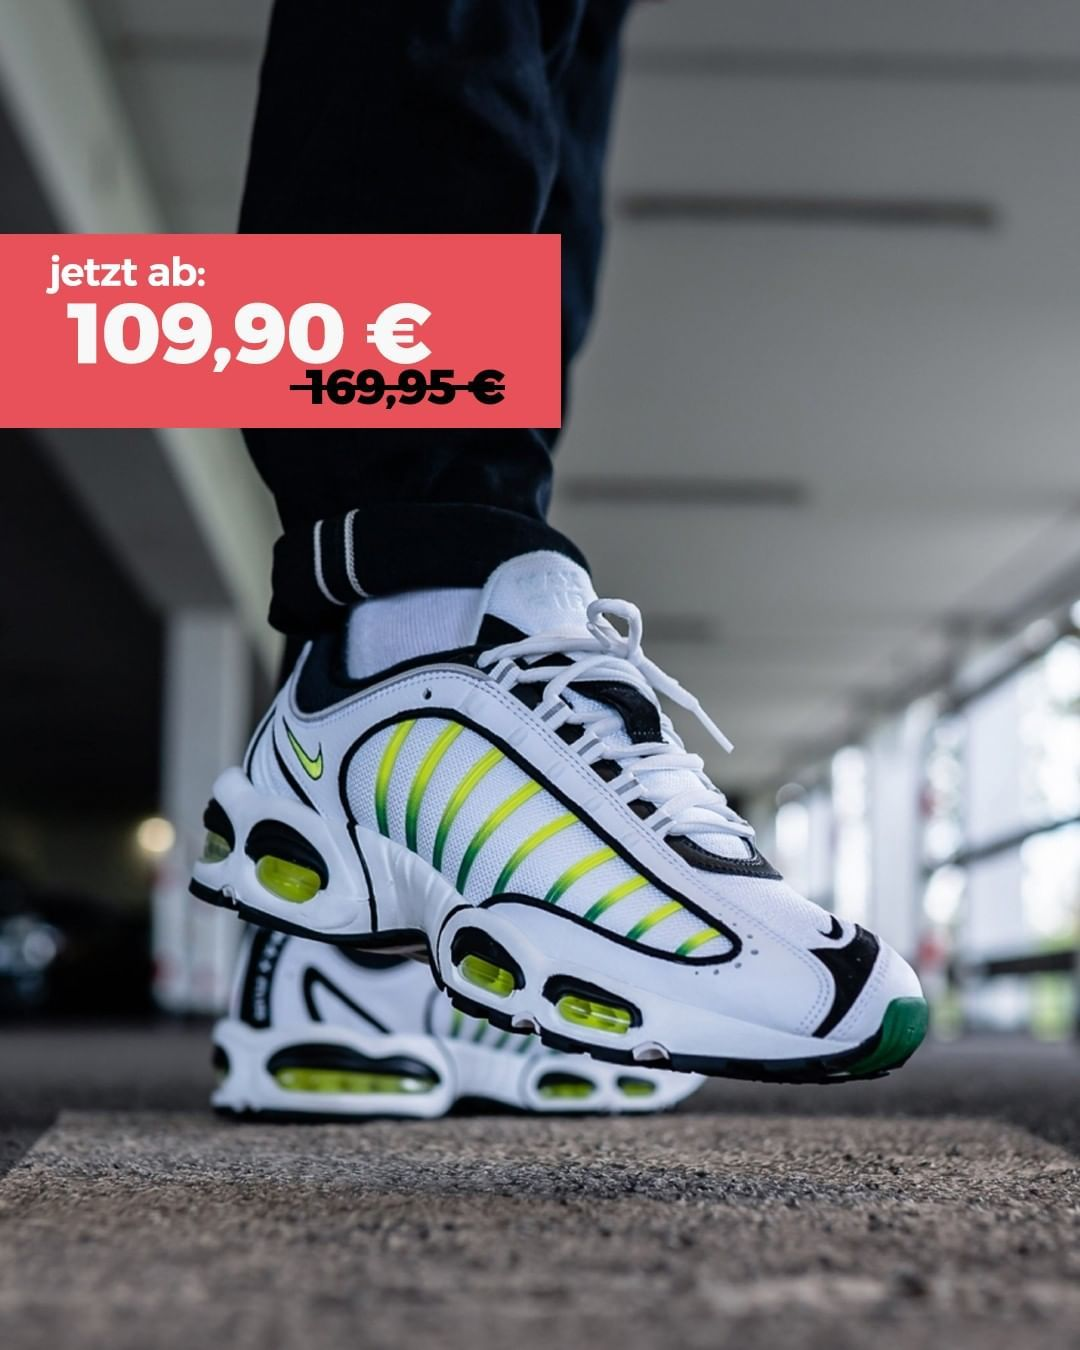 Nike Air Max Tailwind IV in weiss AQ2567100 | Nike air